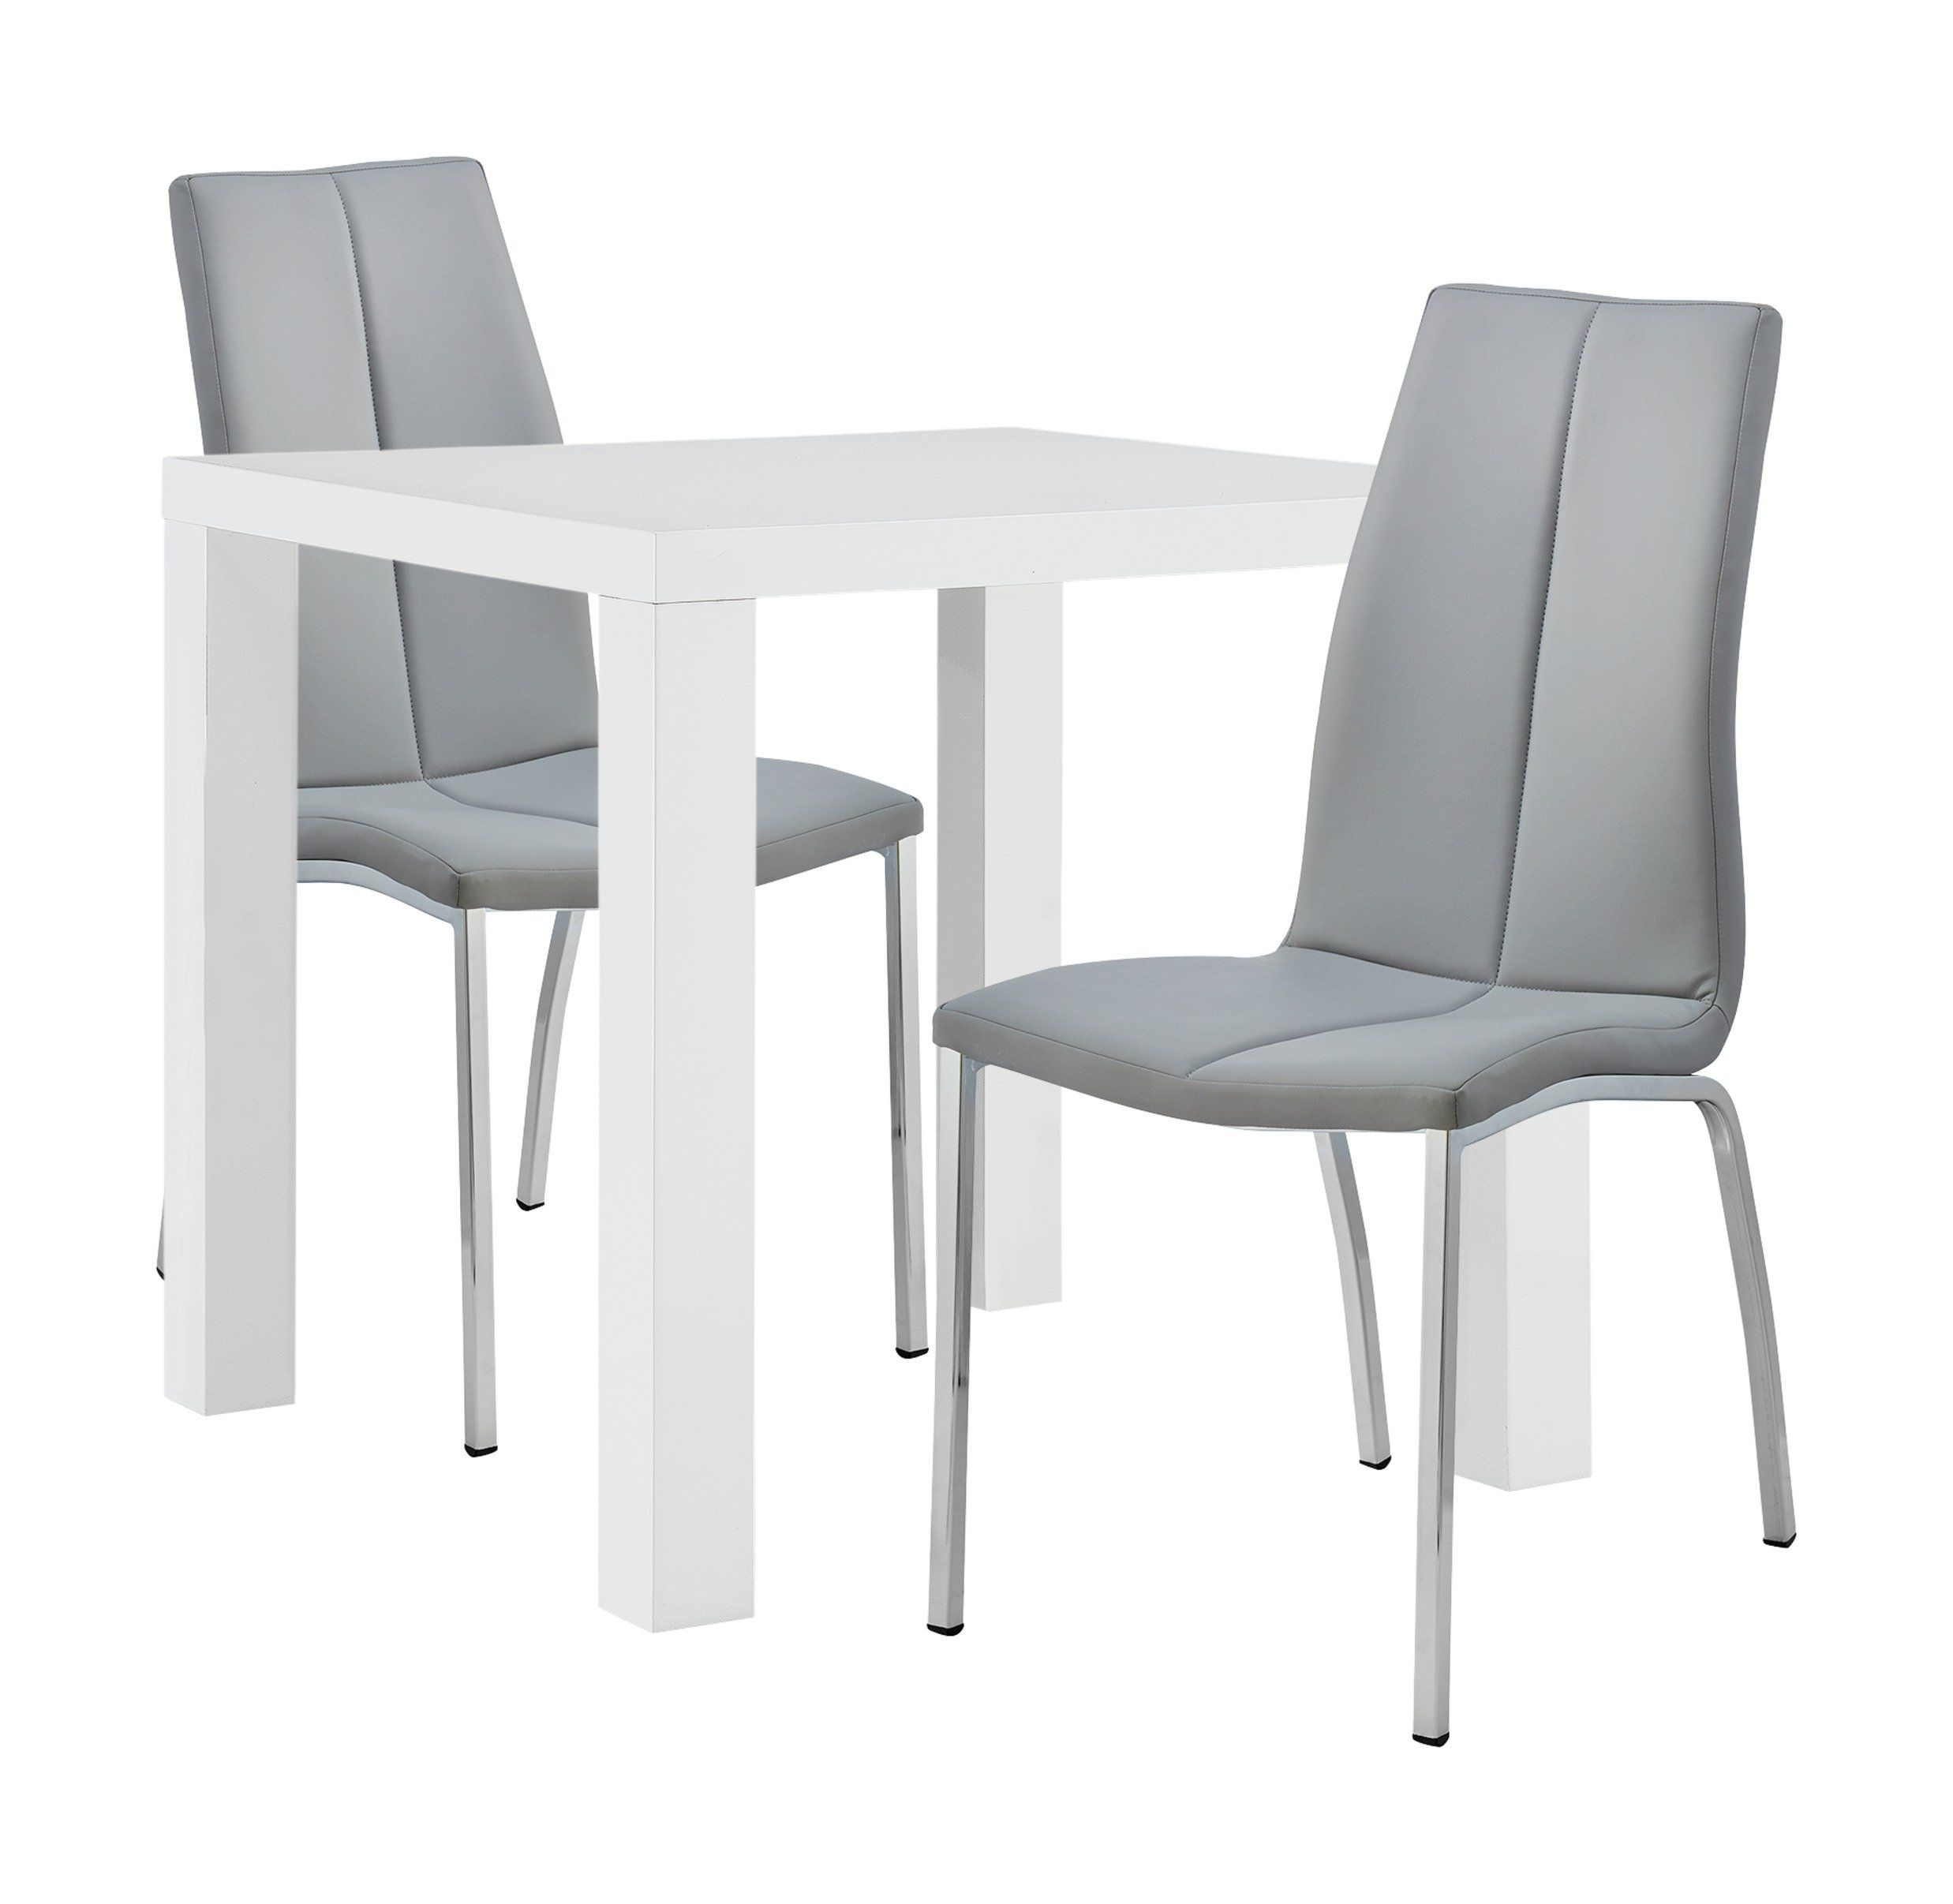 80 cm Round White Table /& 2//4 Blue Chairs Sets Kitchen Dining Room Wooden Modern